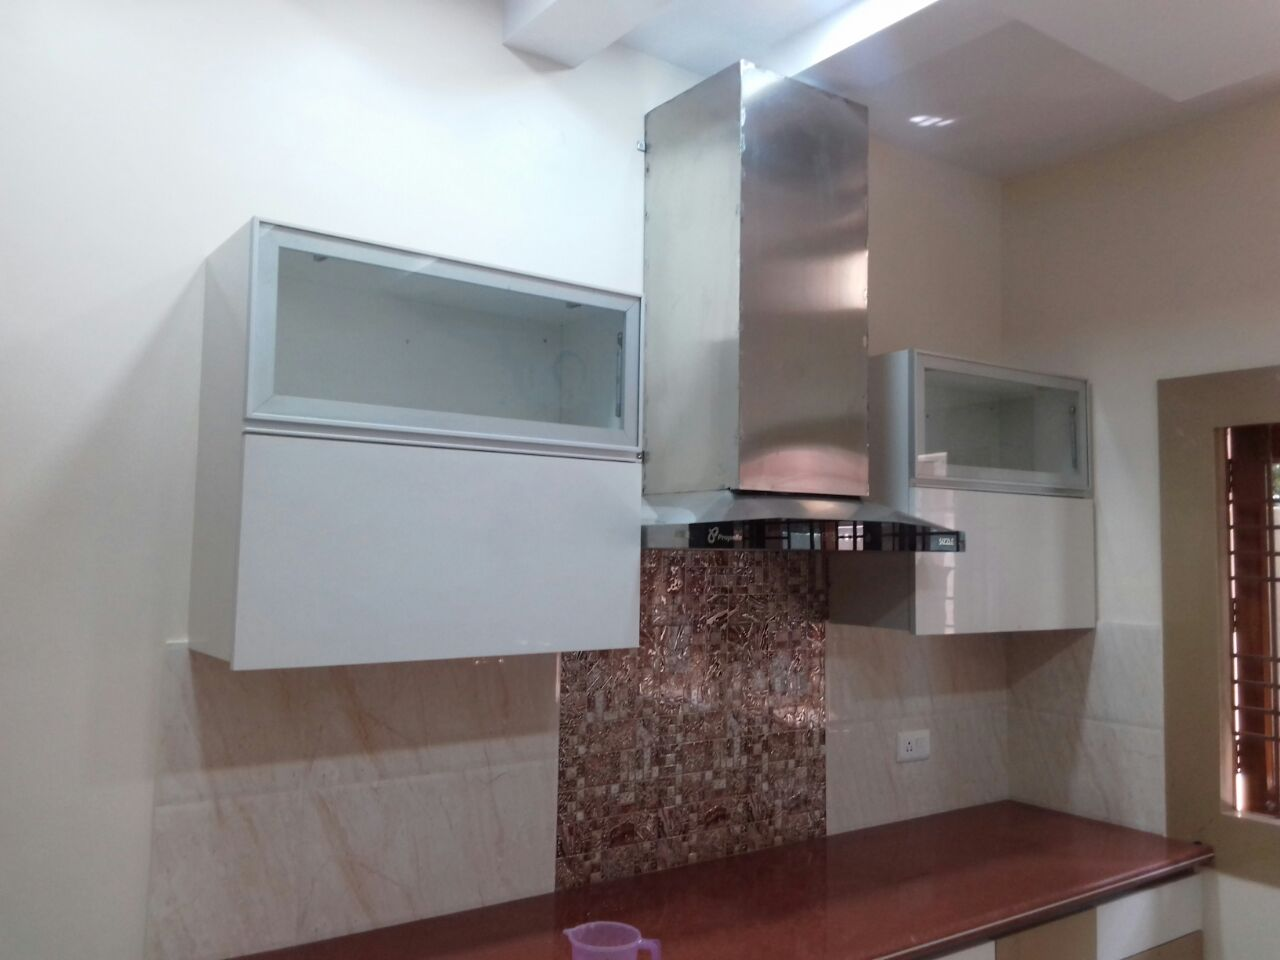 KITCHEN DECOR Hazaribagh Jharkhand | KITCHEN DECOR IN Jharkhand